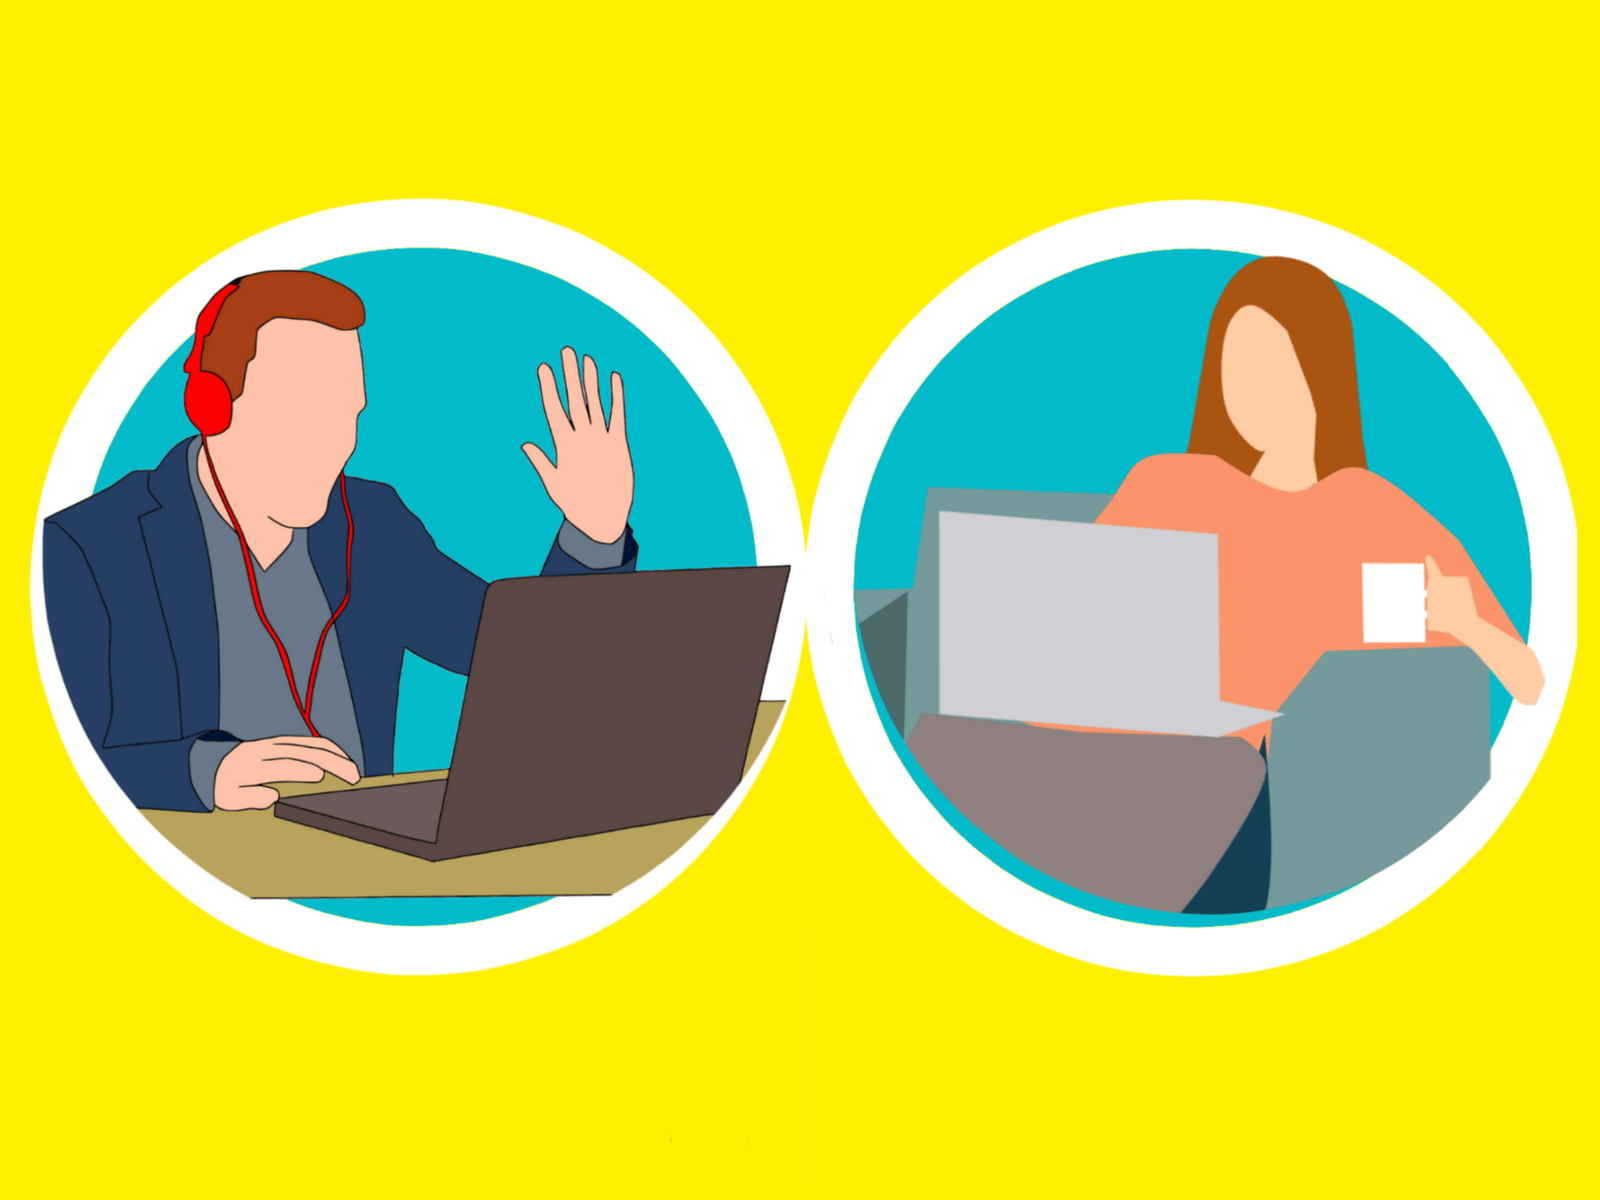 Illustration of a man using a laptop to make a video call, and a lady viewing her laptop receiving the call